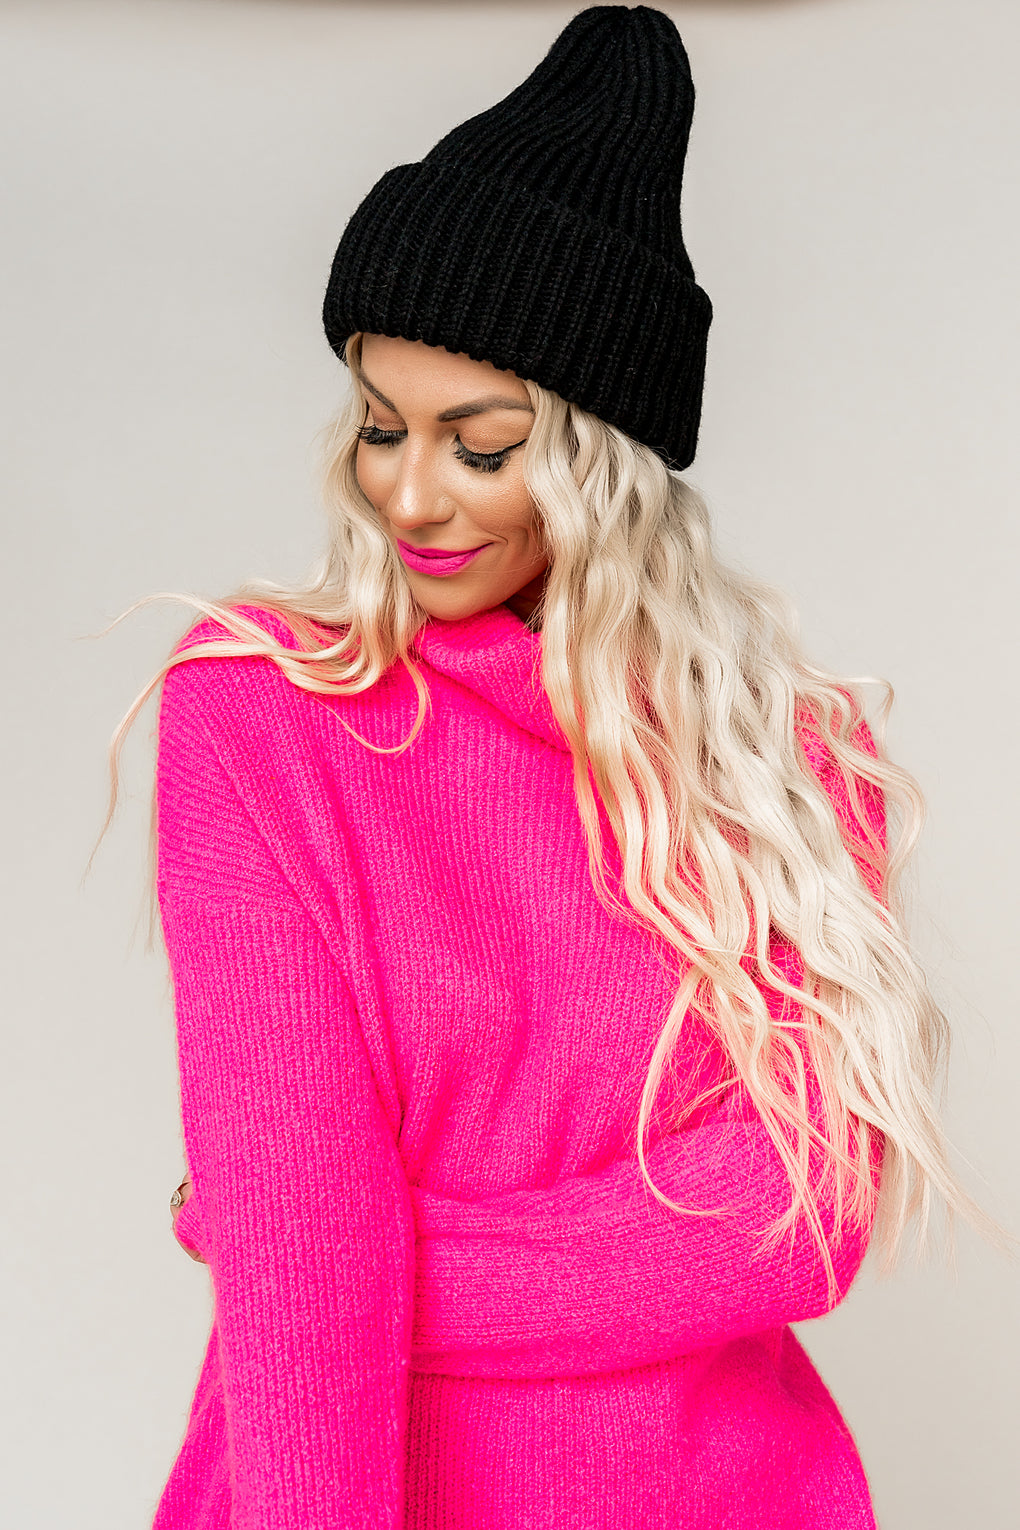 Rosy Cheeks Turtleneck Knit